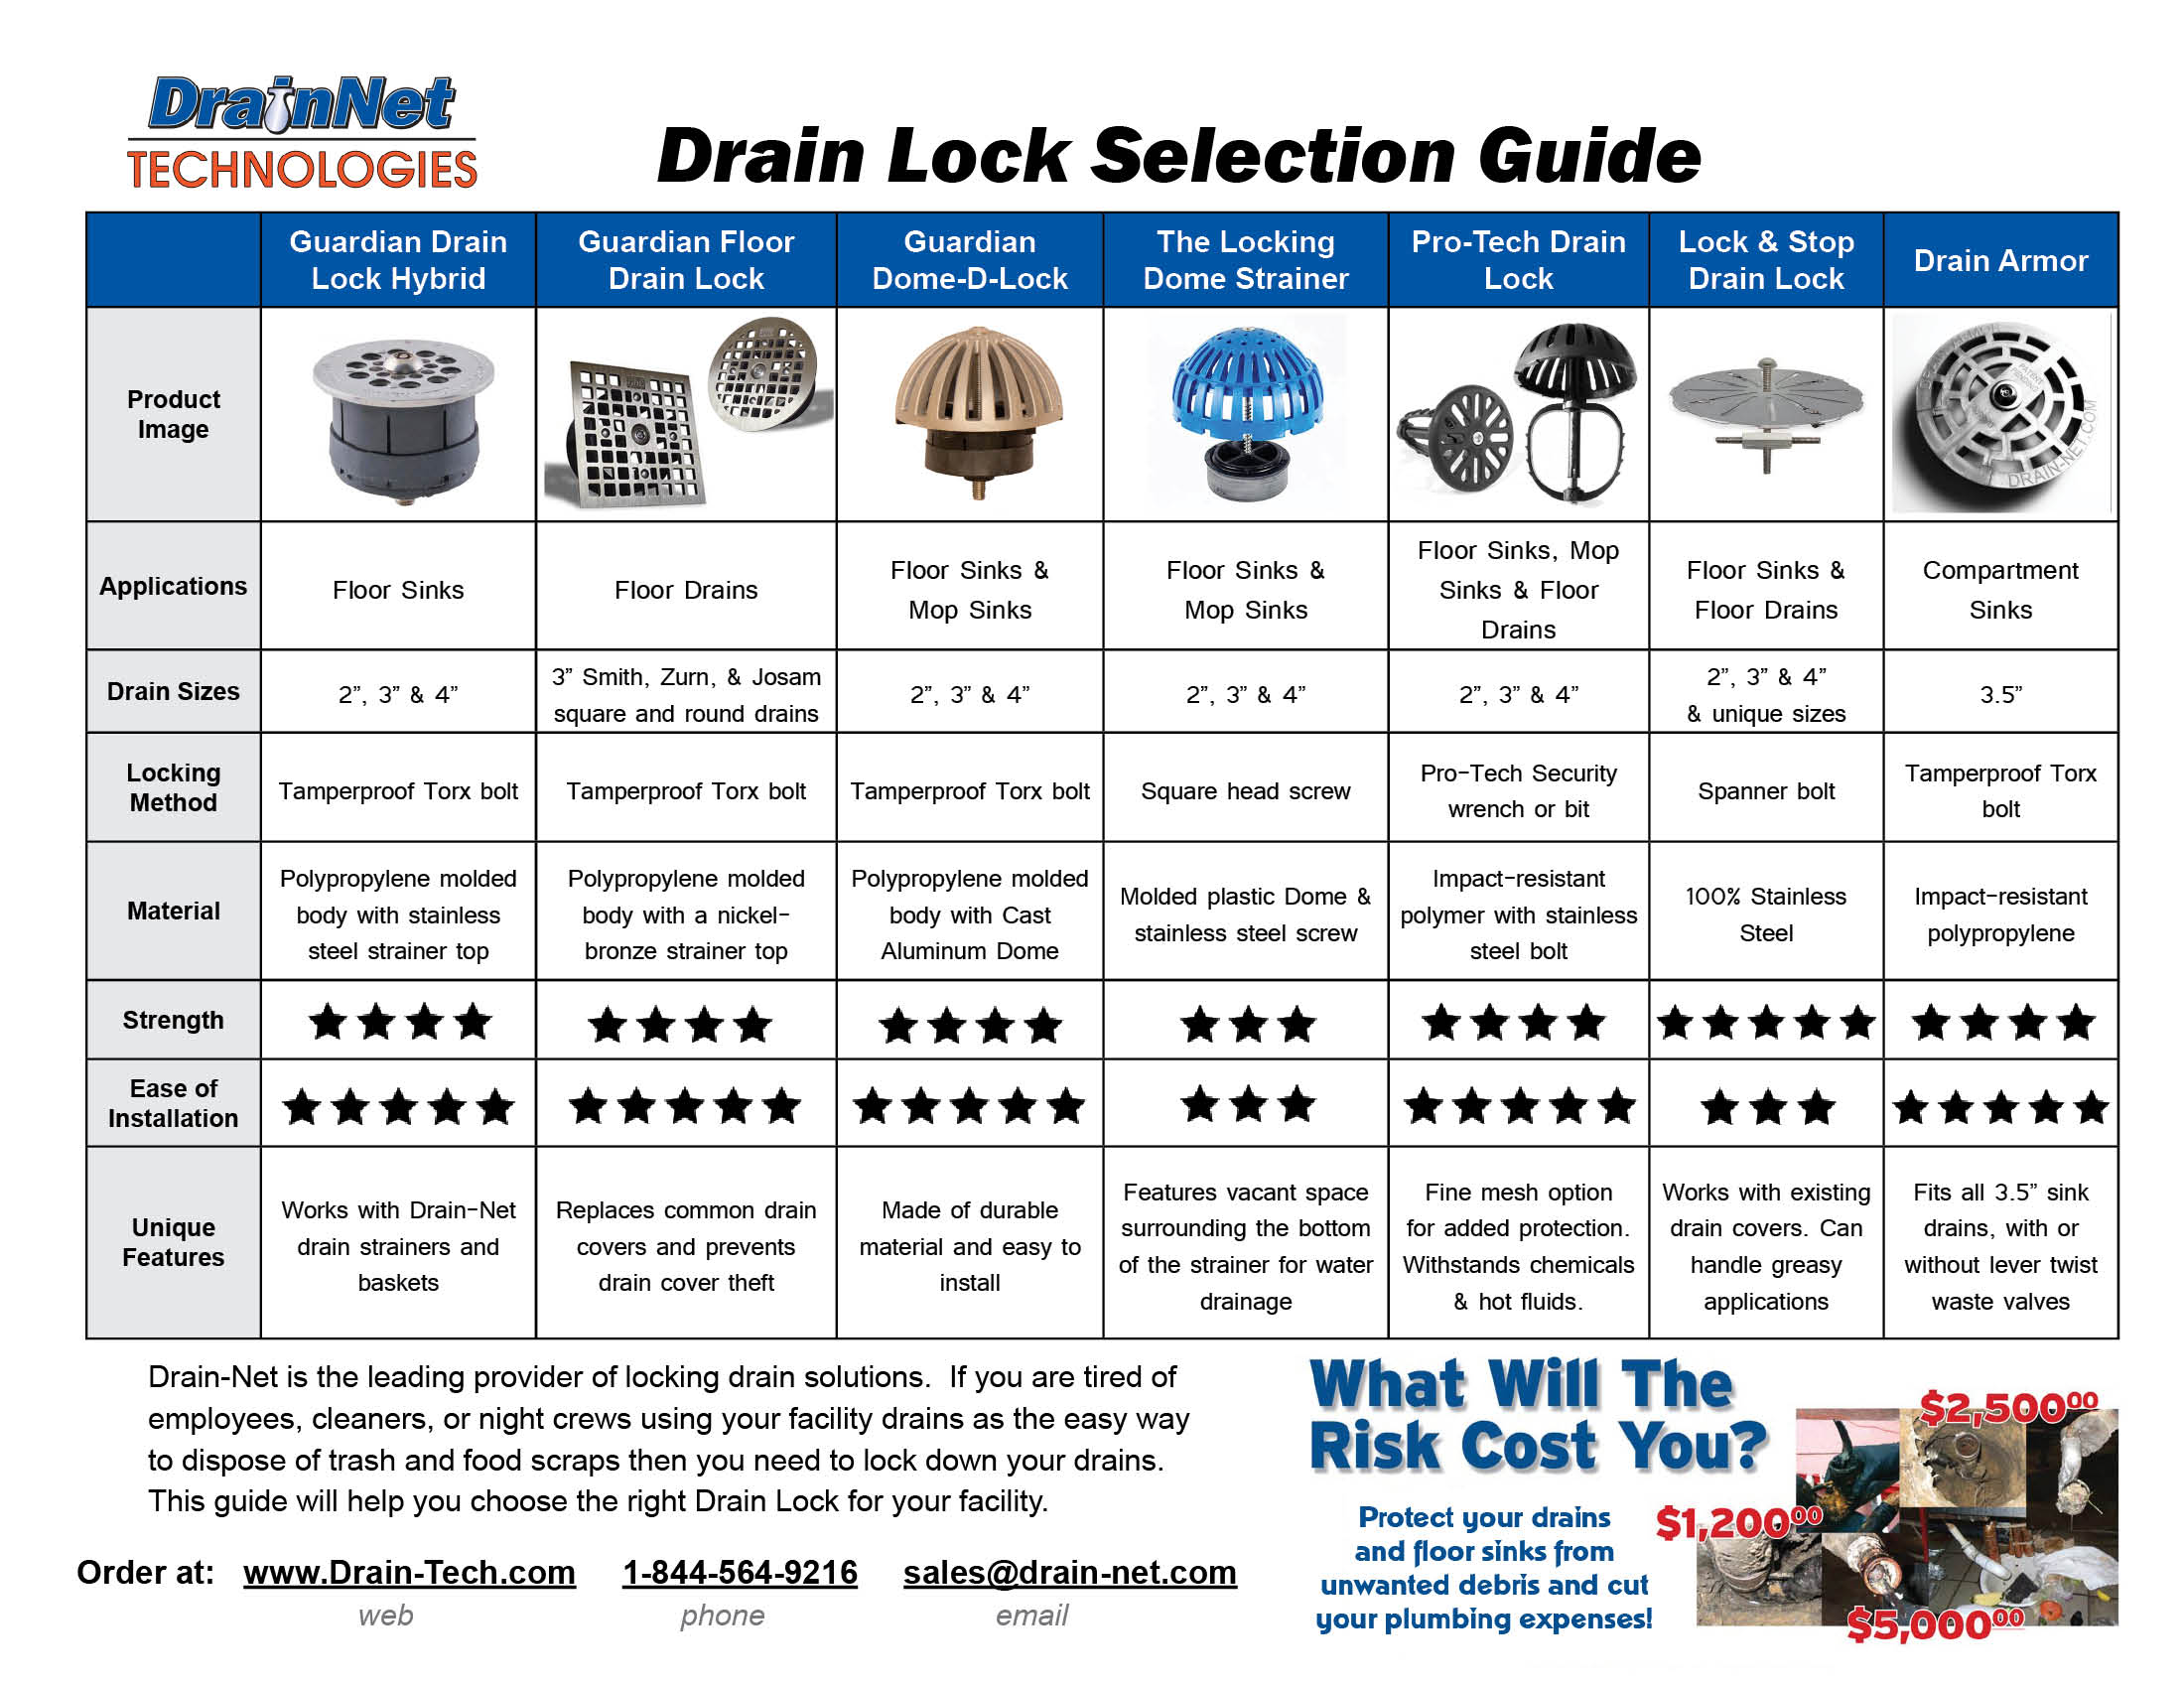 drain-lock-selection-guide-2020-with-drain-armor.jpg